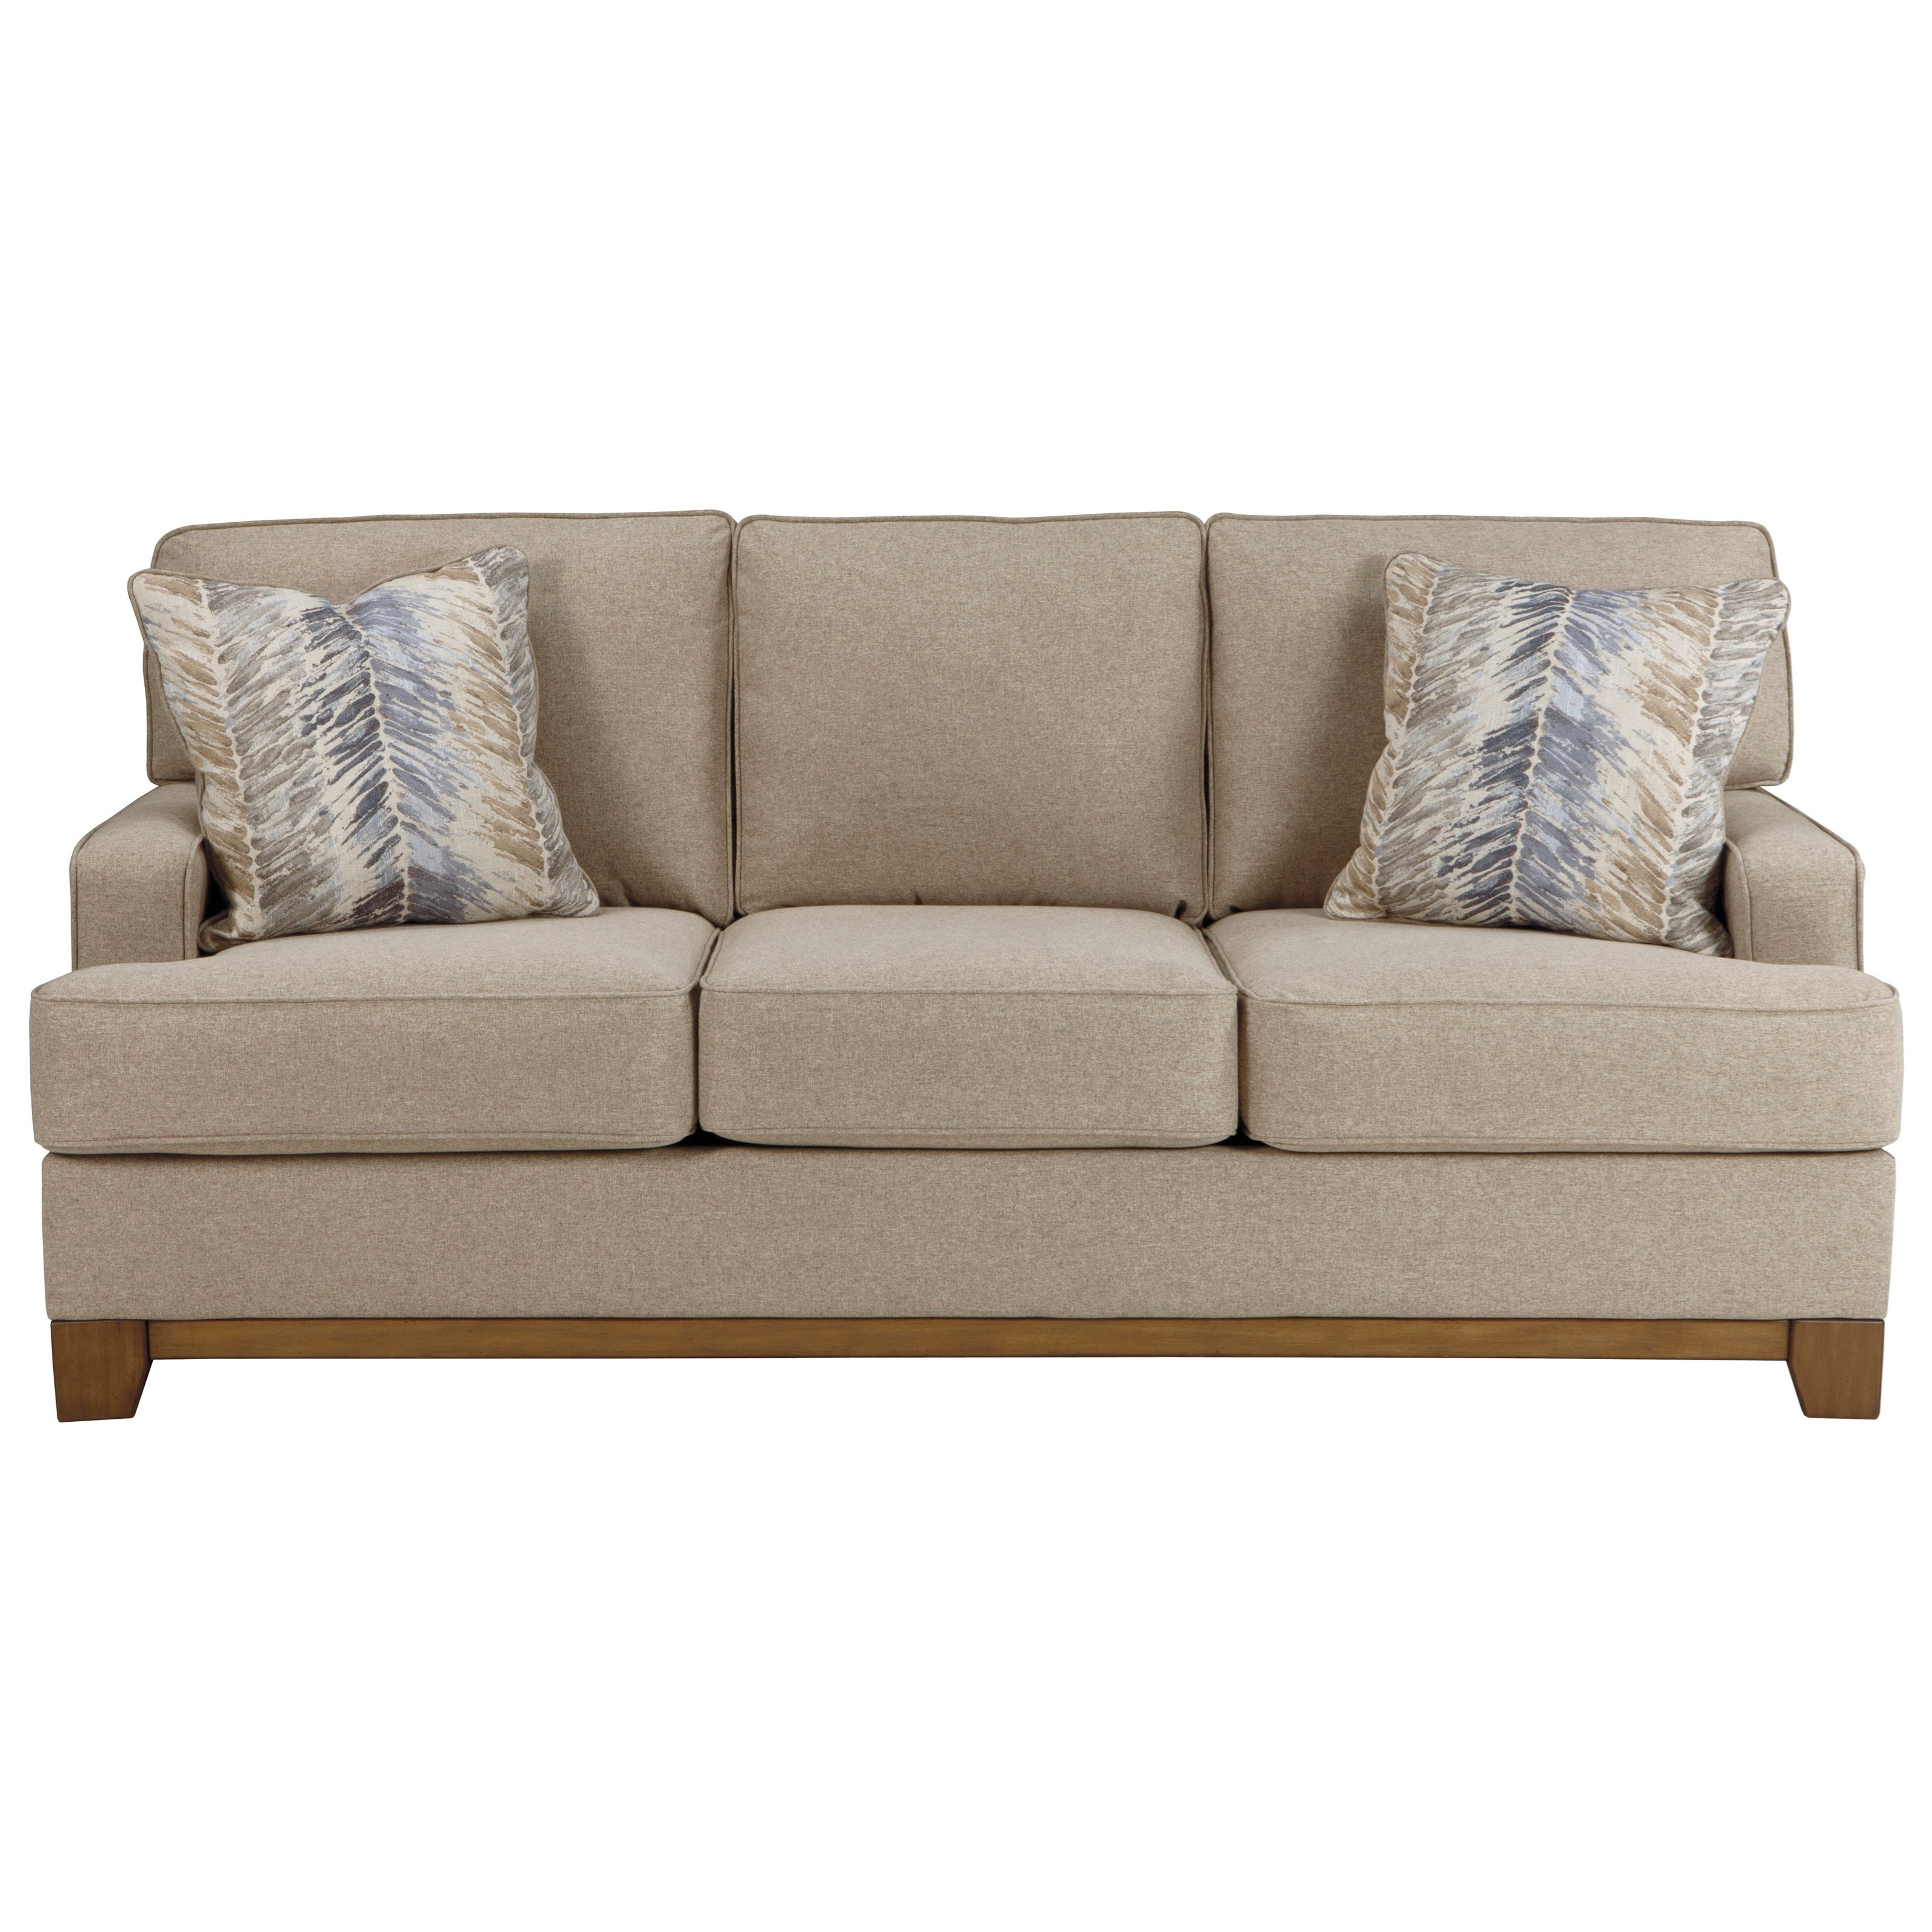 Benchcraft Hillsway Contemporary Sofa With Exposed Wood Front Rail Value City Furniture Sofas